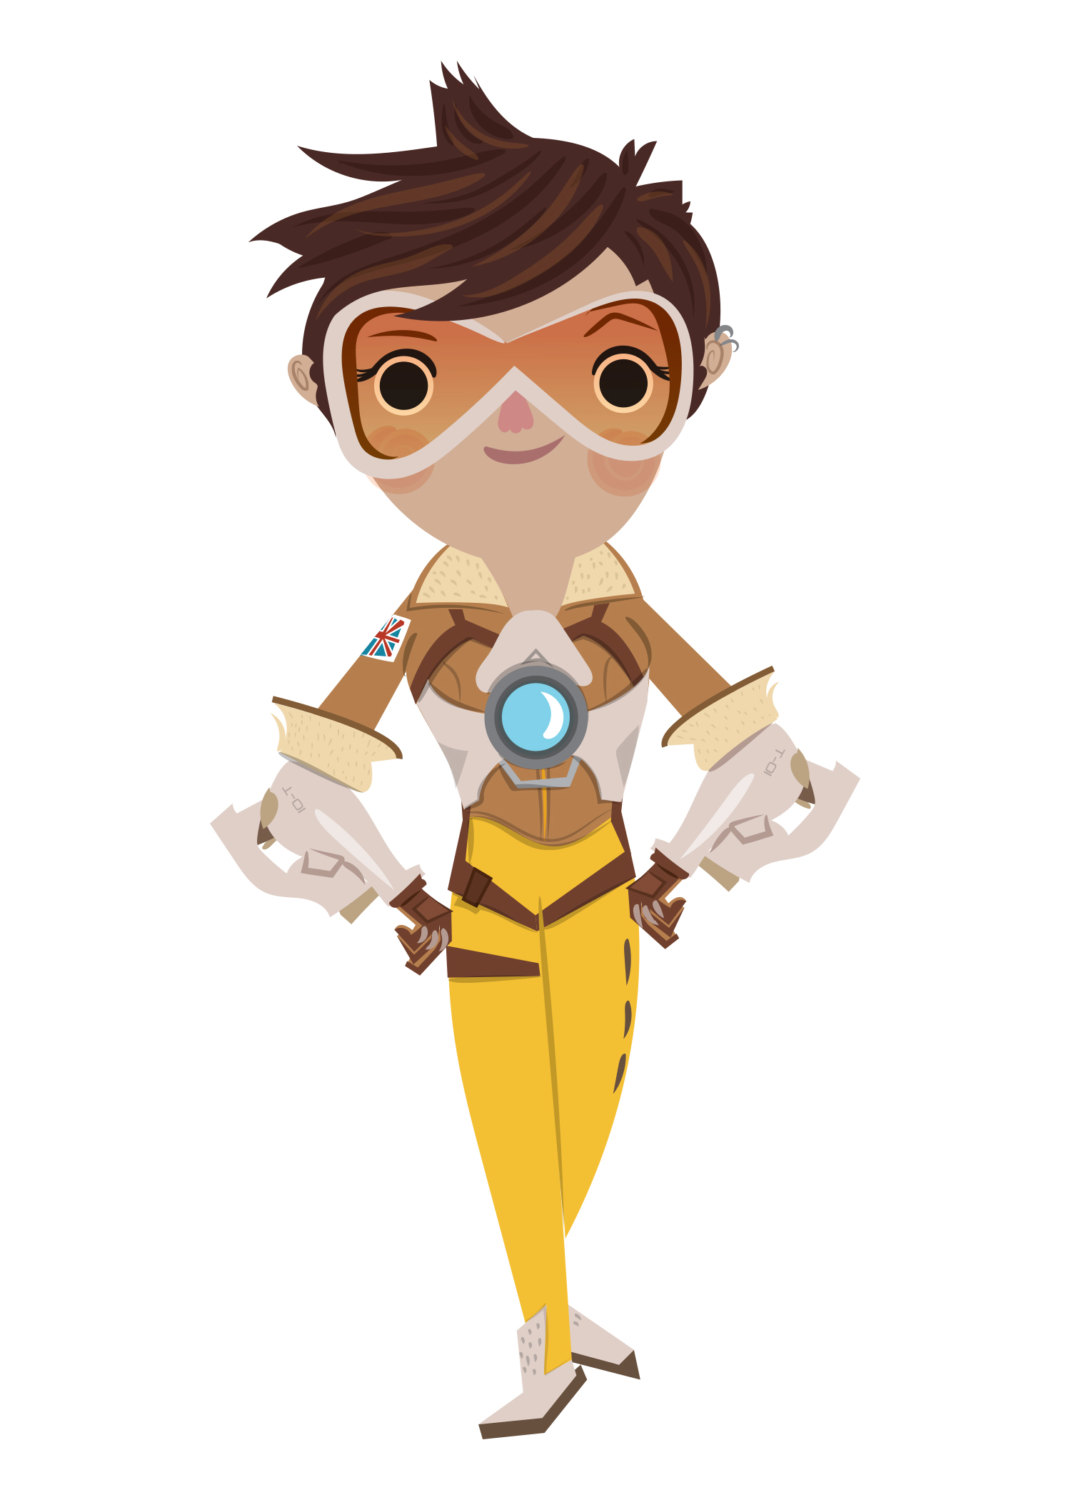 Overwatch tracer clipart picture transparent stock Overwatch cute | Etsy picture transparent stock